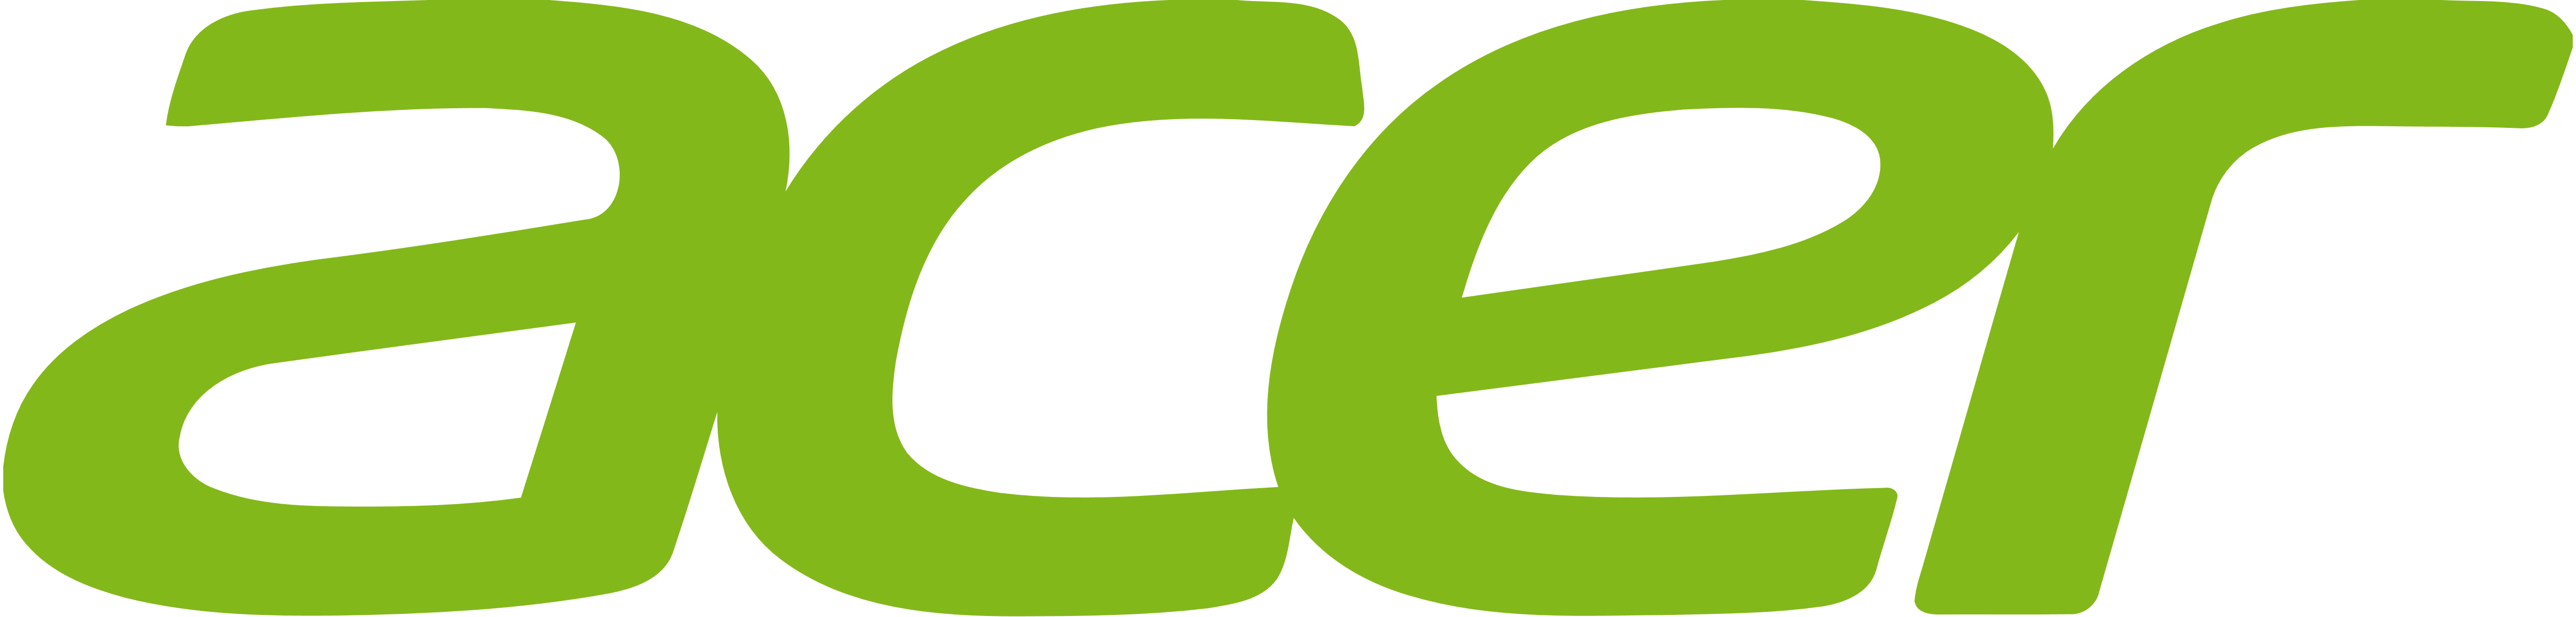 Acer logo, logotype. All logos, emblems, brands pictures gallery.